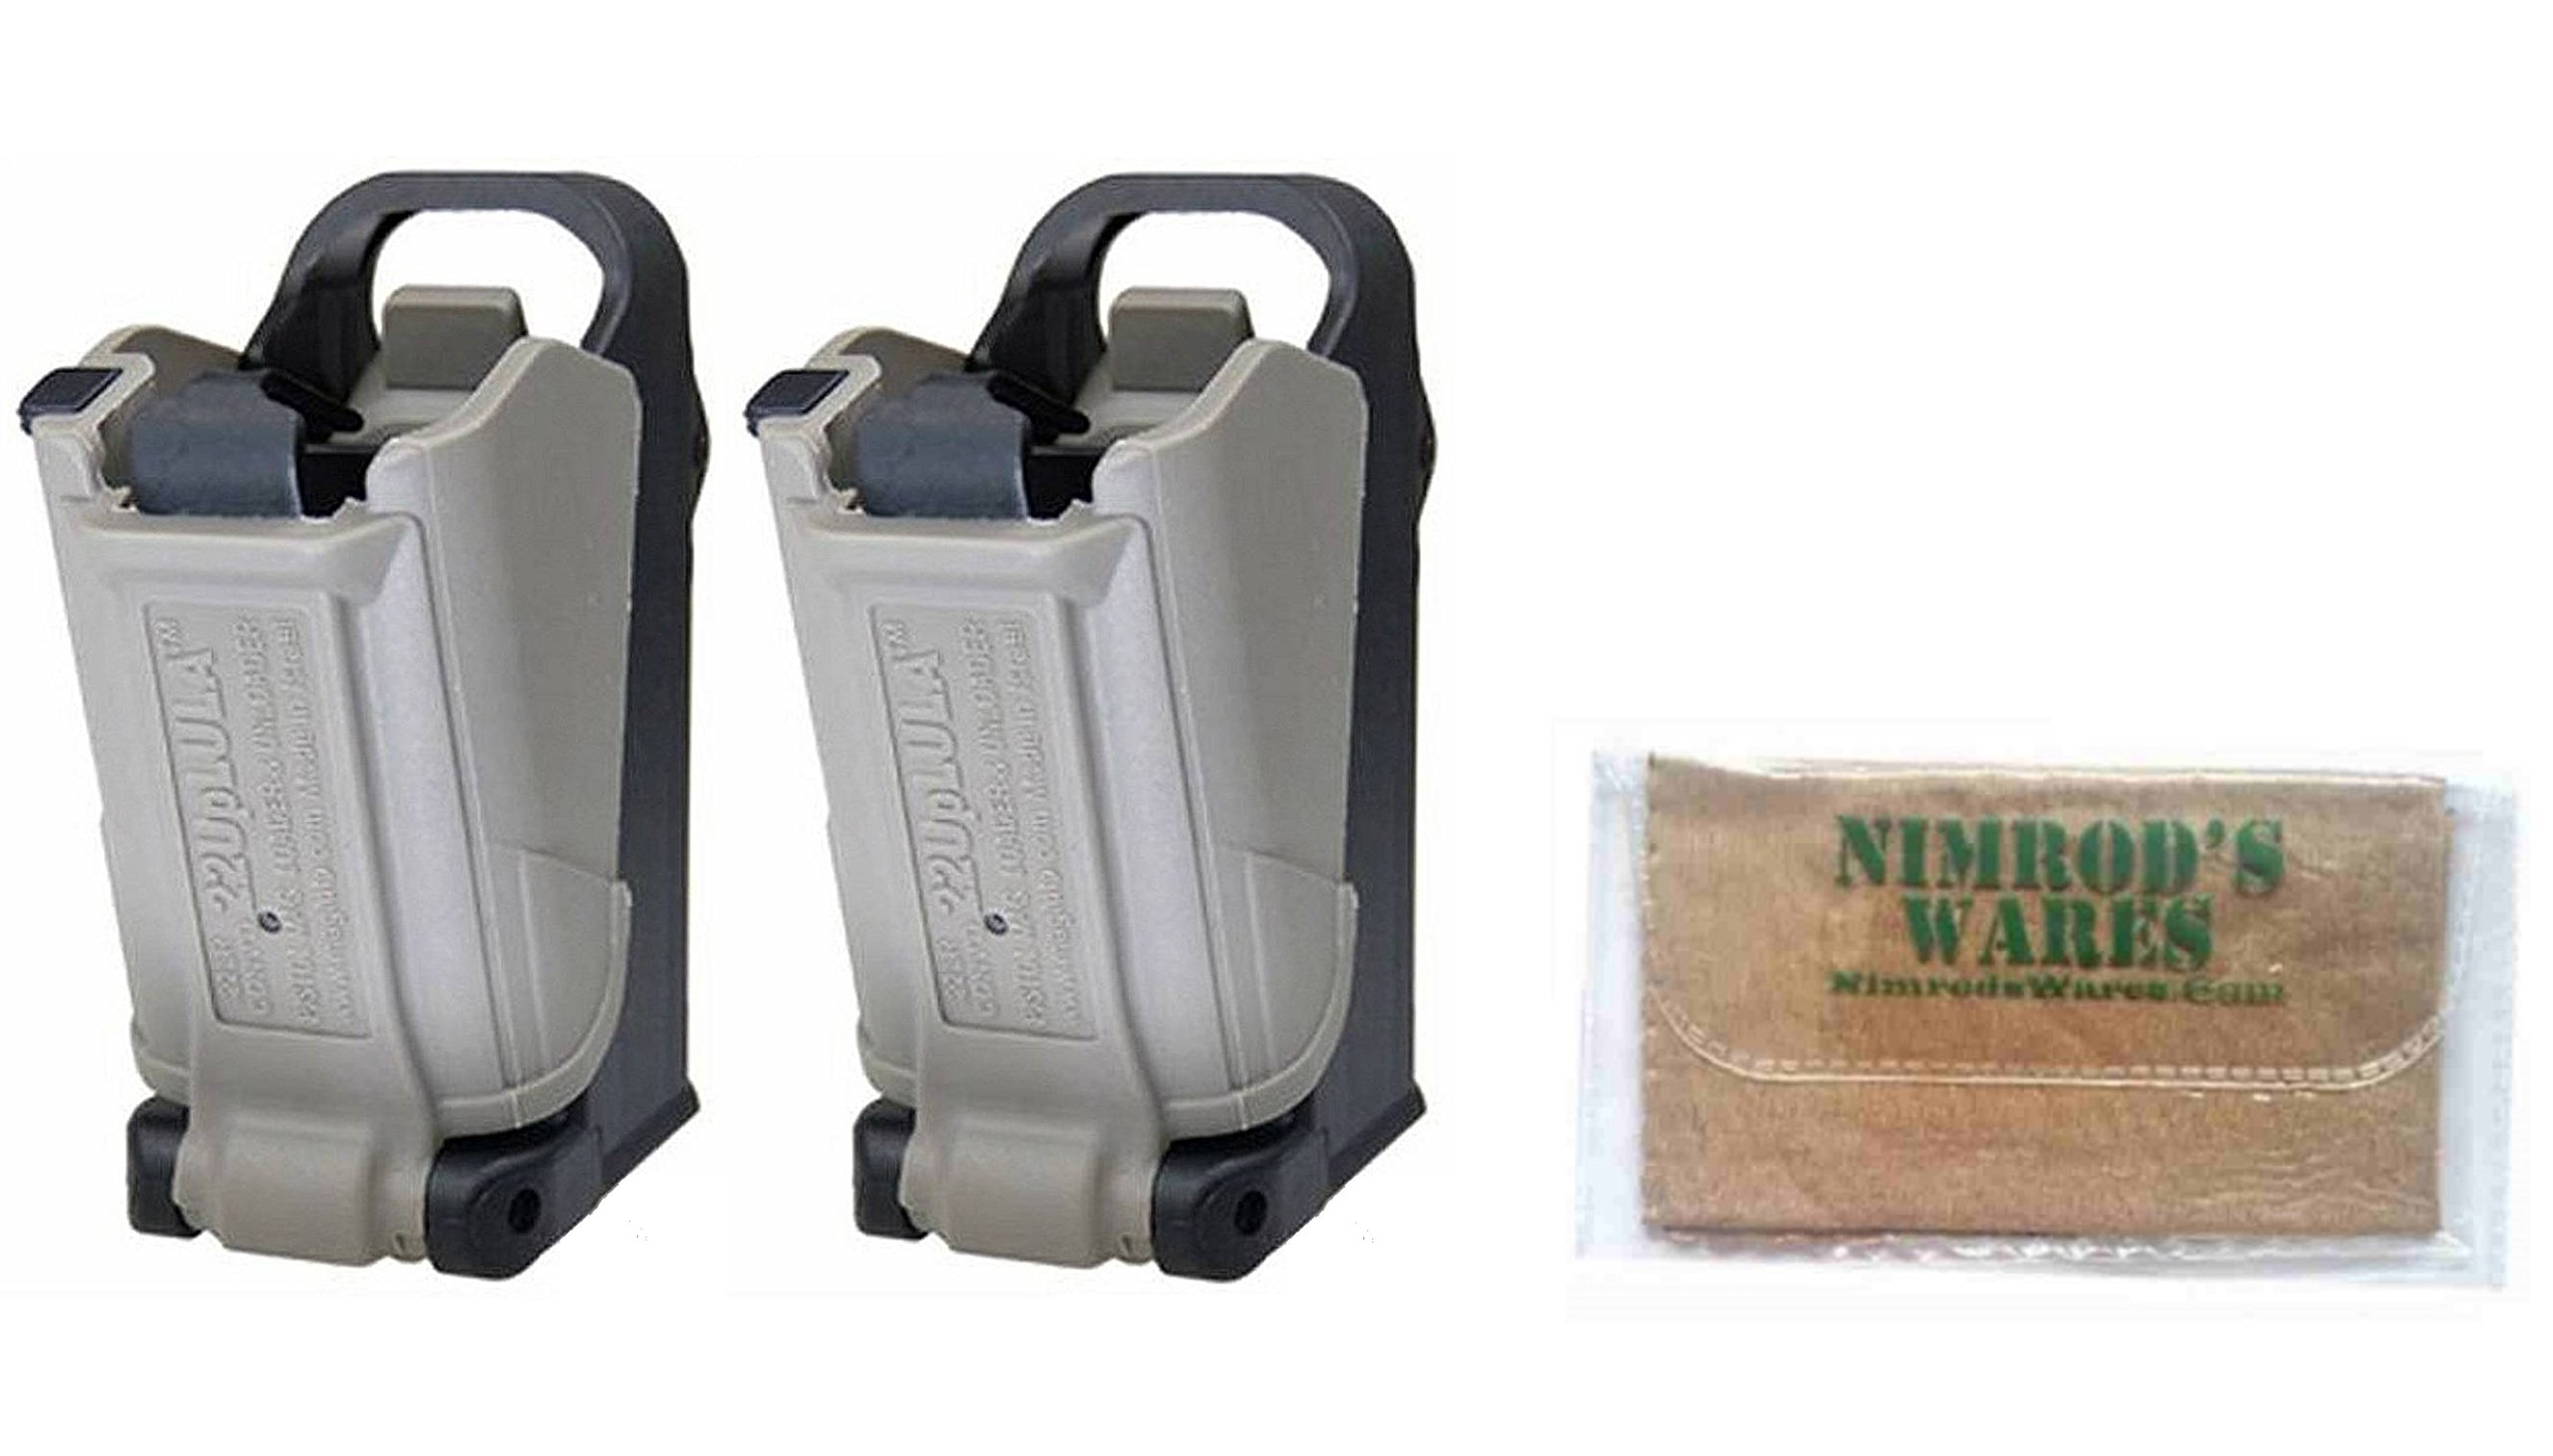 Nimrod's Wares 2-Pack Butler Creek 24224 LULA Loaders 22LR Wide-Body Double-Stack Mags Microfiber Cloth